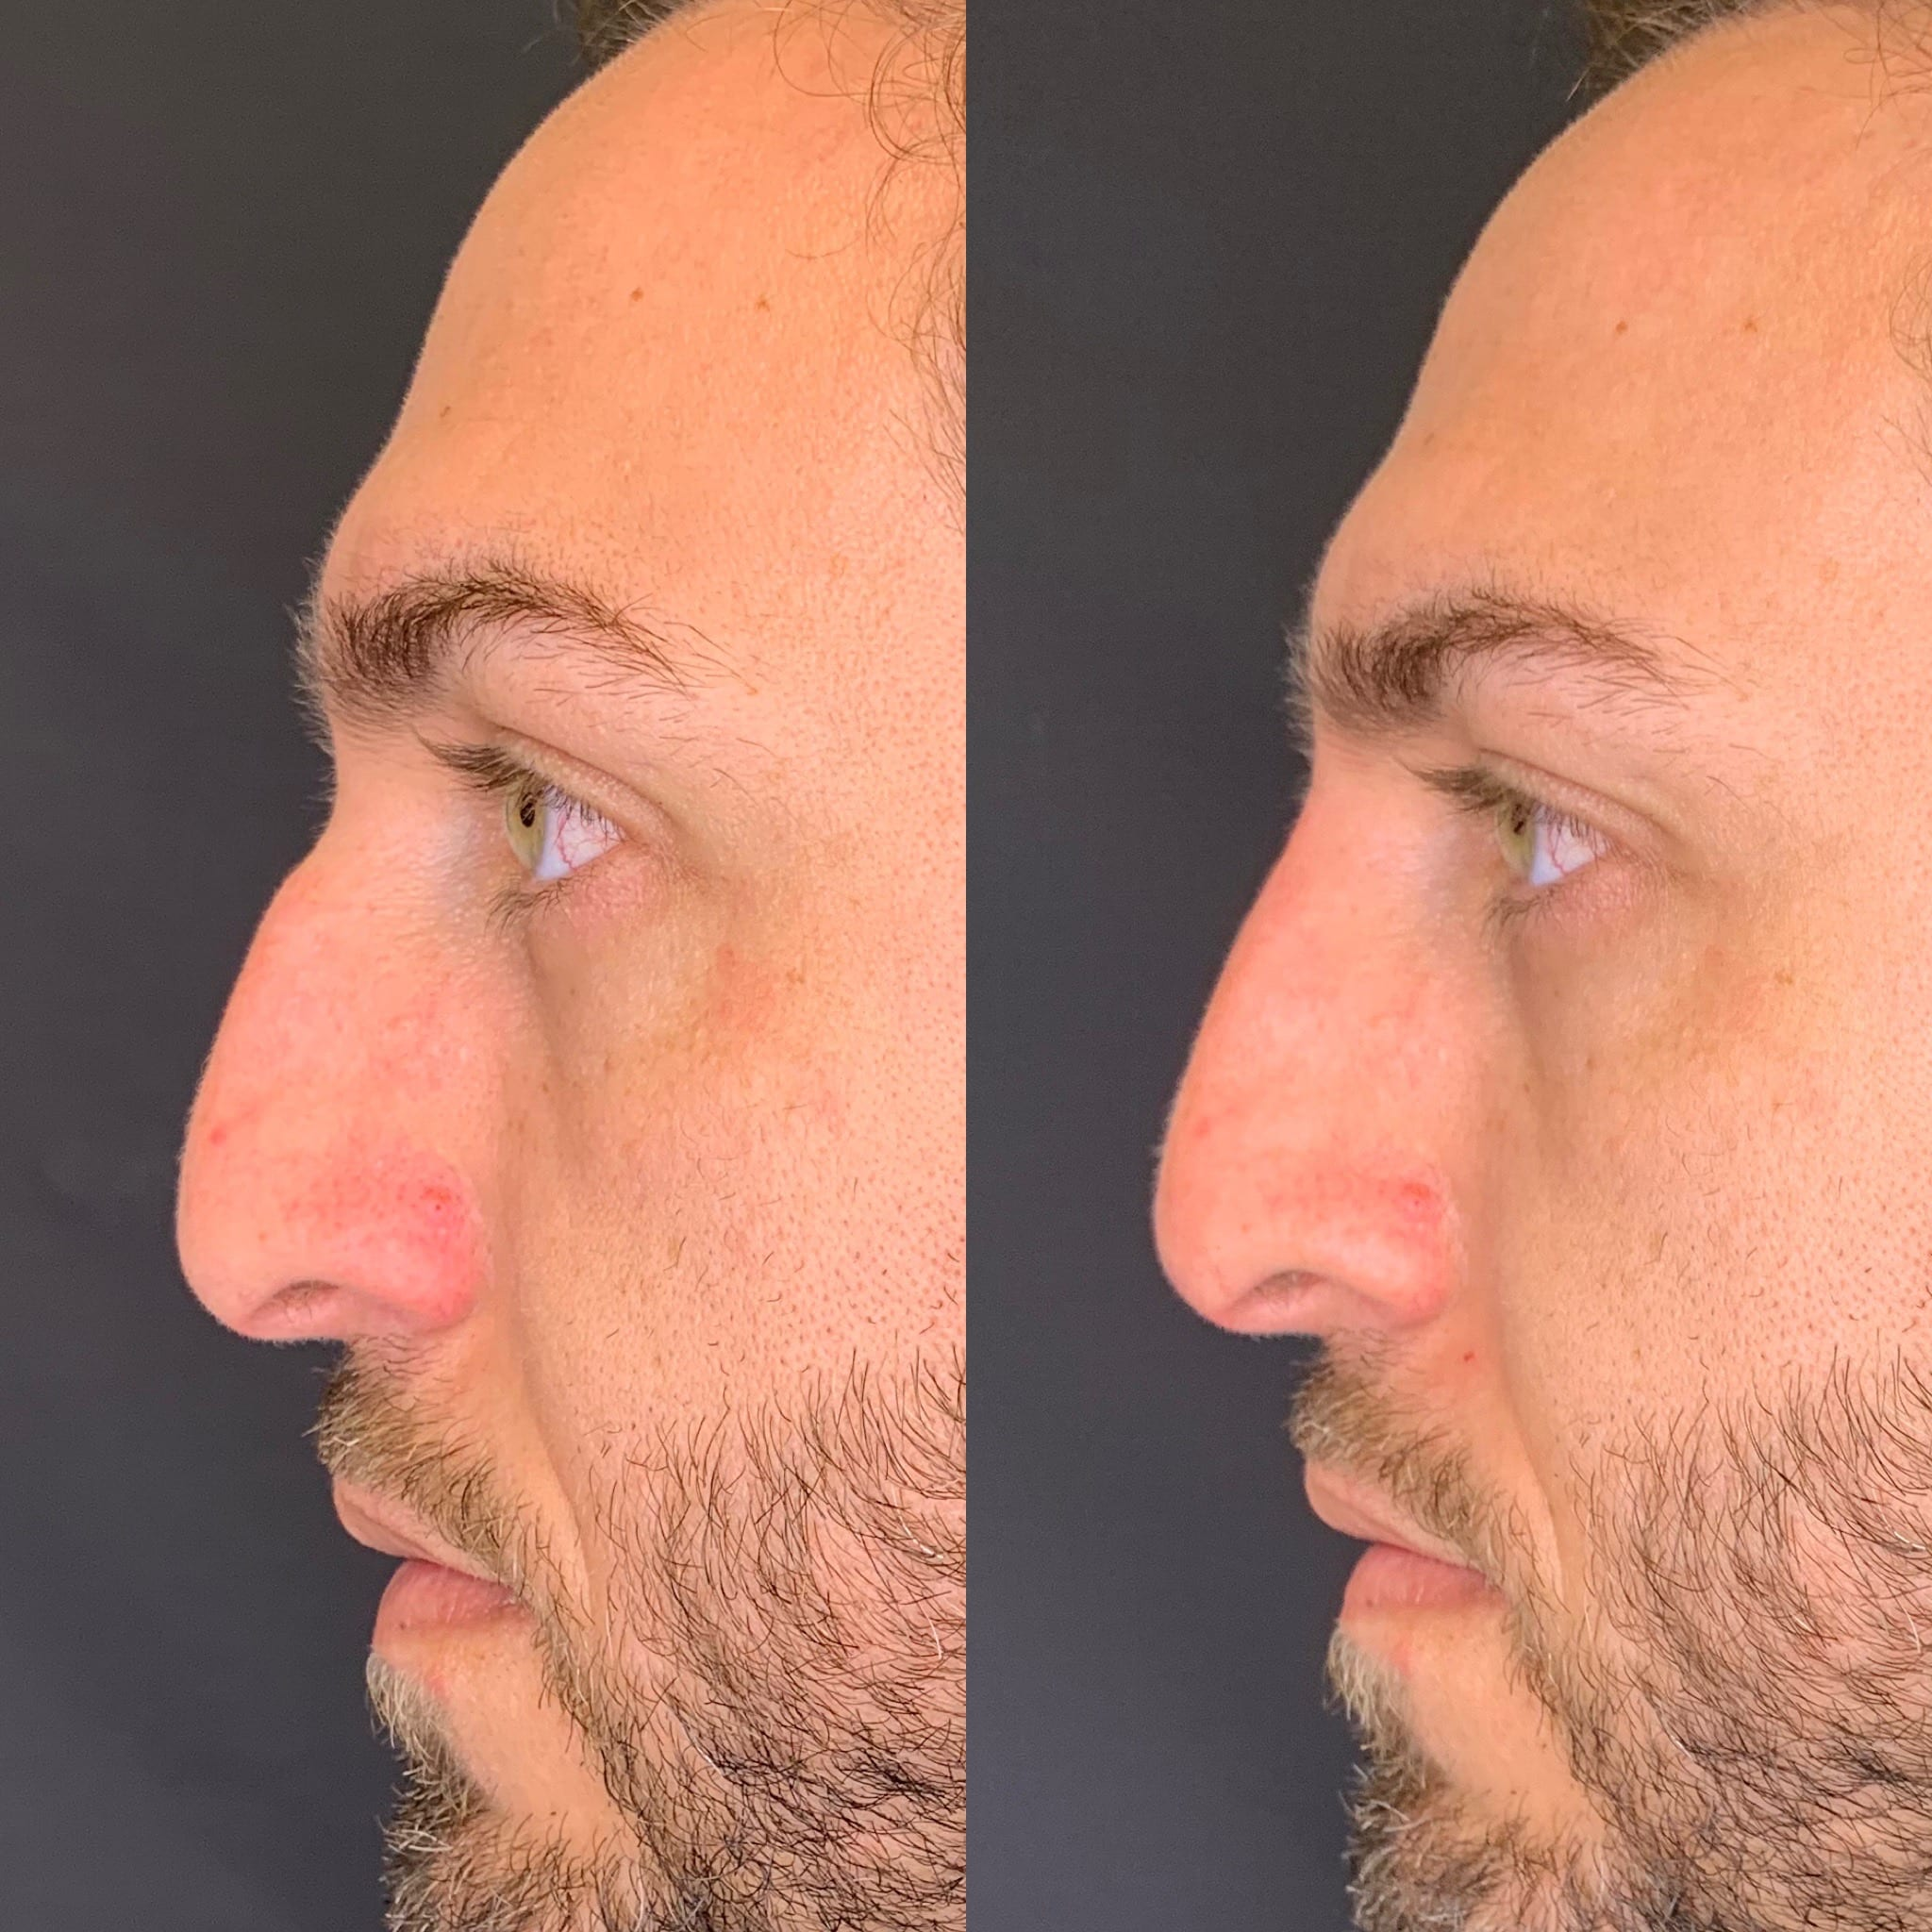 35 y/o Middle Eastern M immediately after injecting voluma above his nasal hump to improve his side profile.